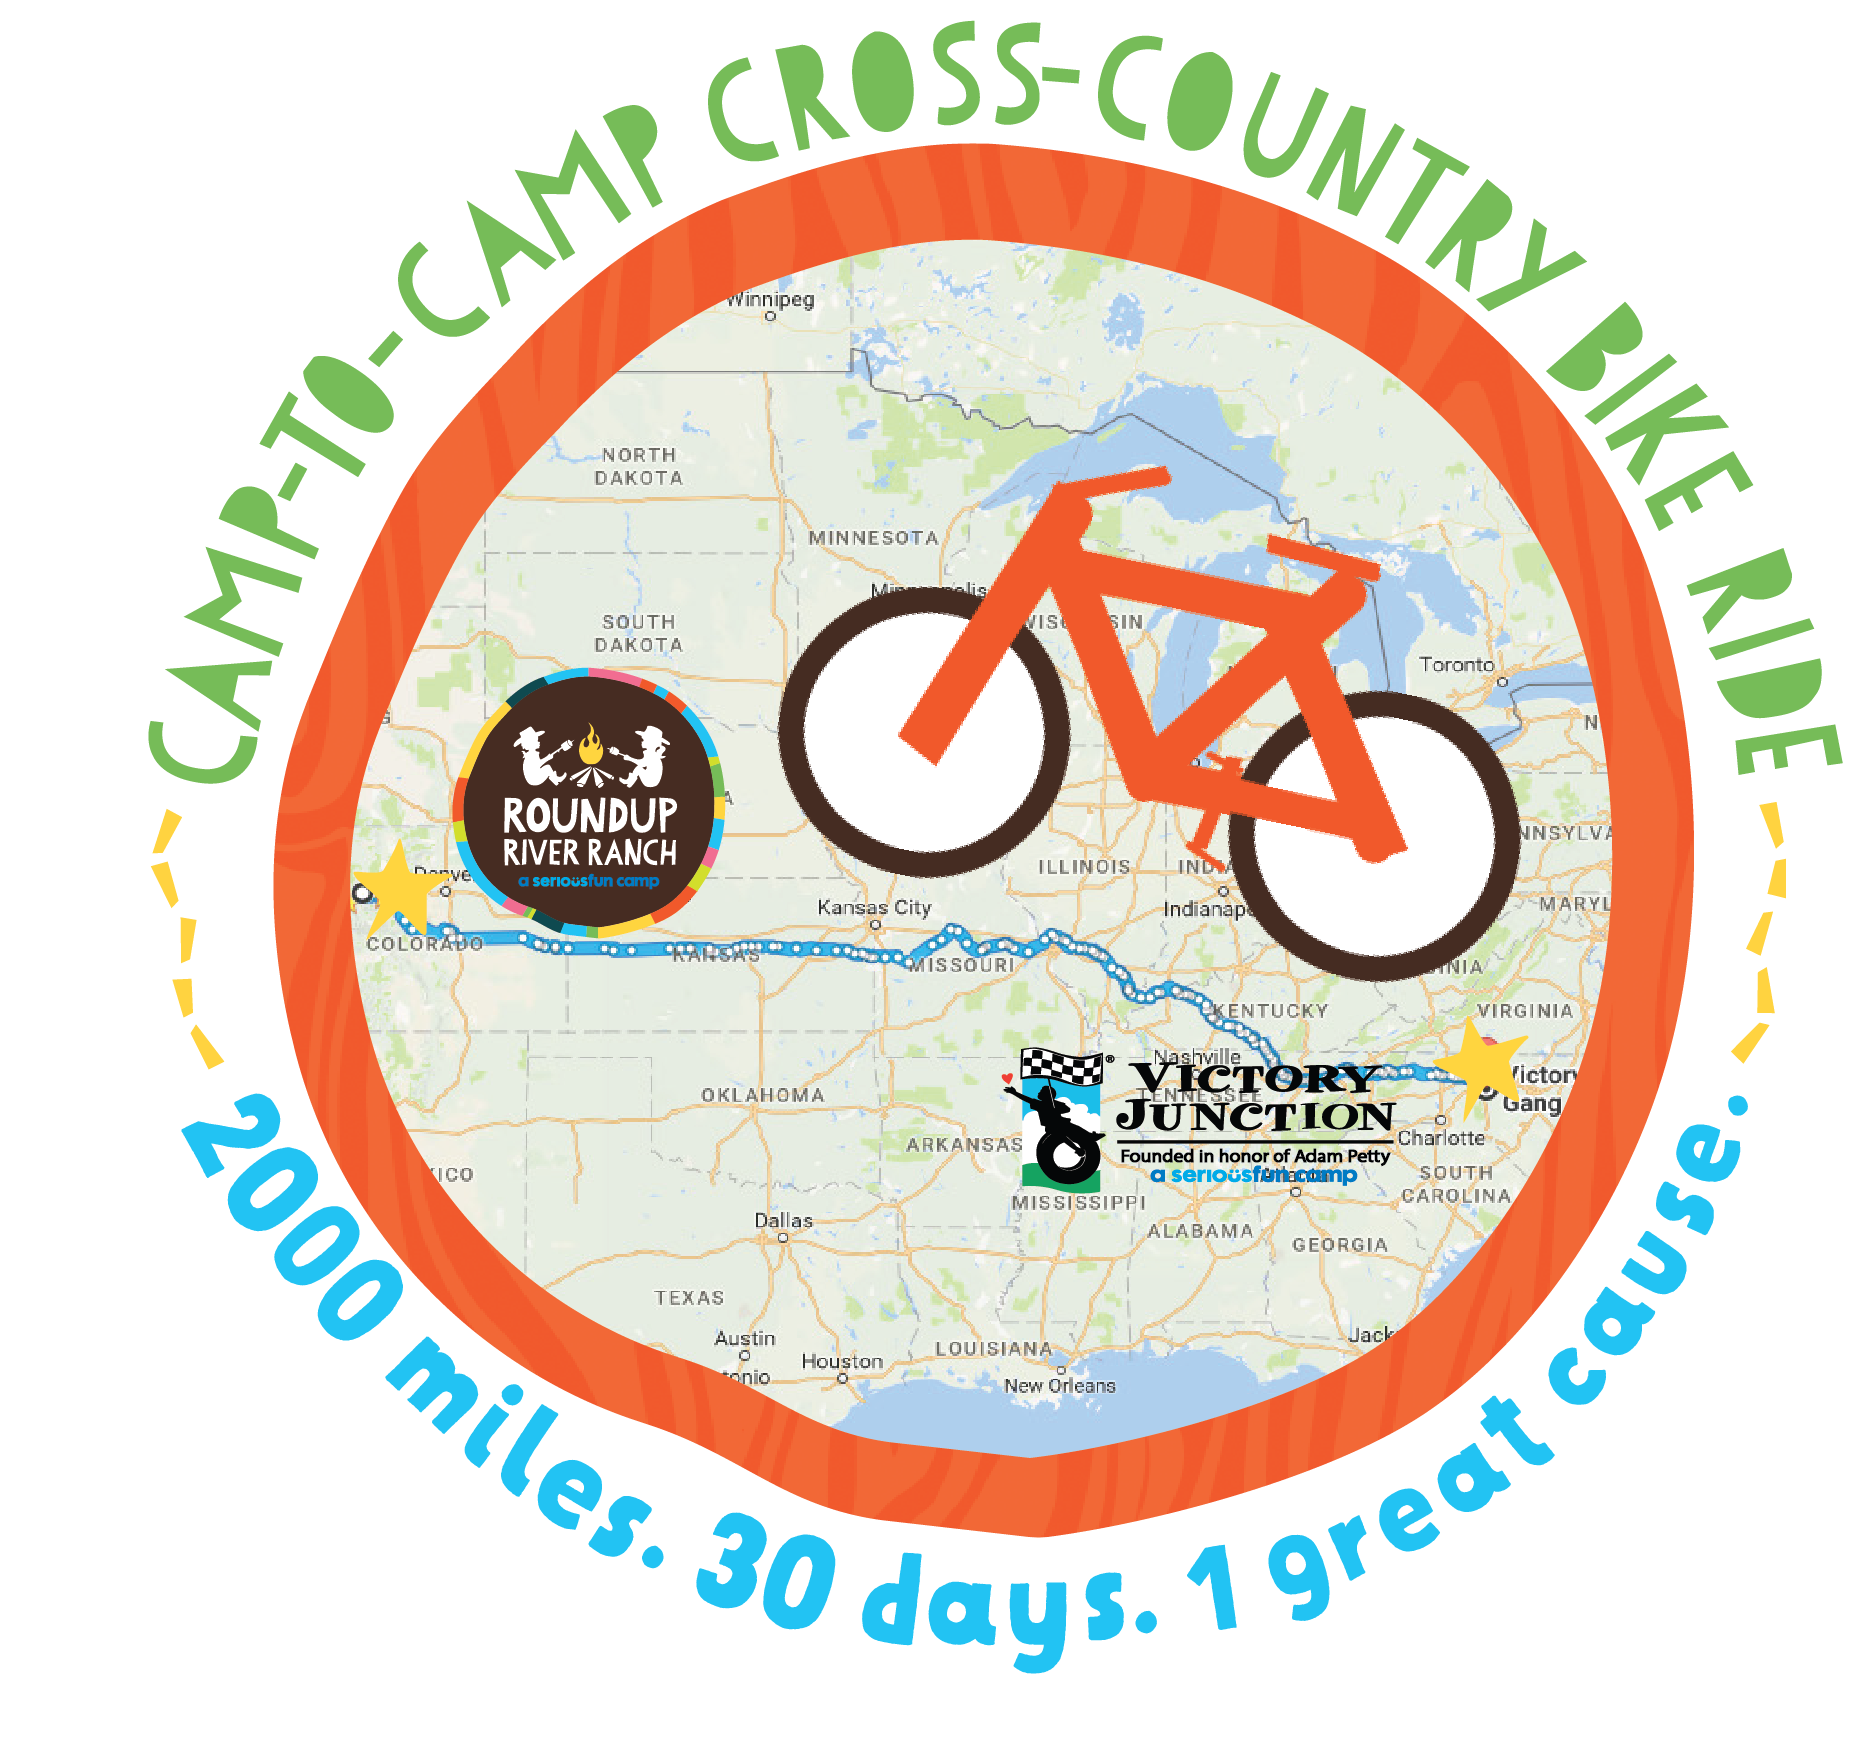 Camp-to-Camp Cross Country Bike Ride with Stuart Frith Photo